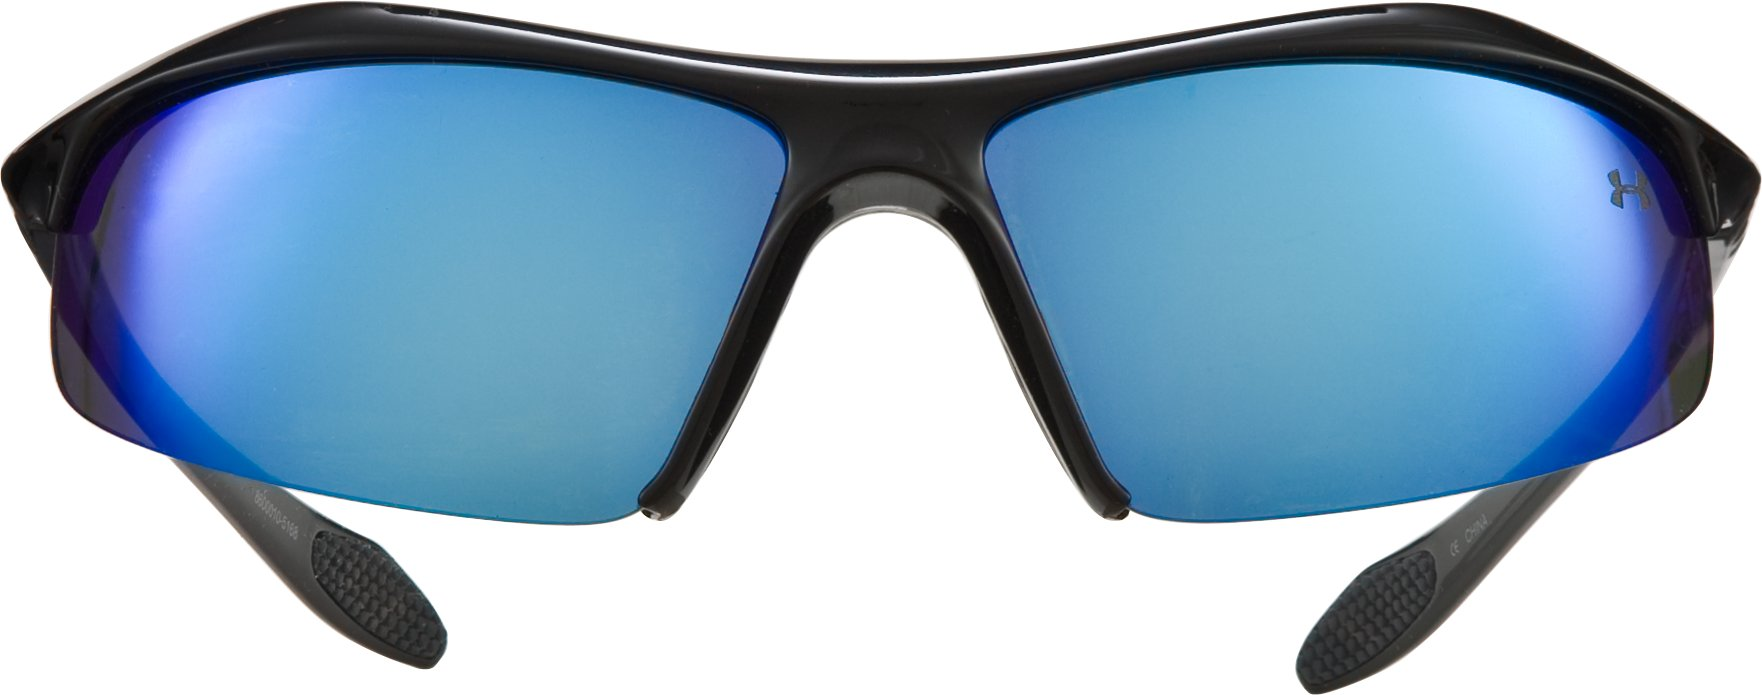 UA Zone Polarized Blue Mirror Sunglasses, Shiny Black, zoomed image